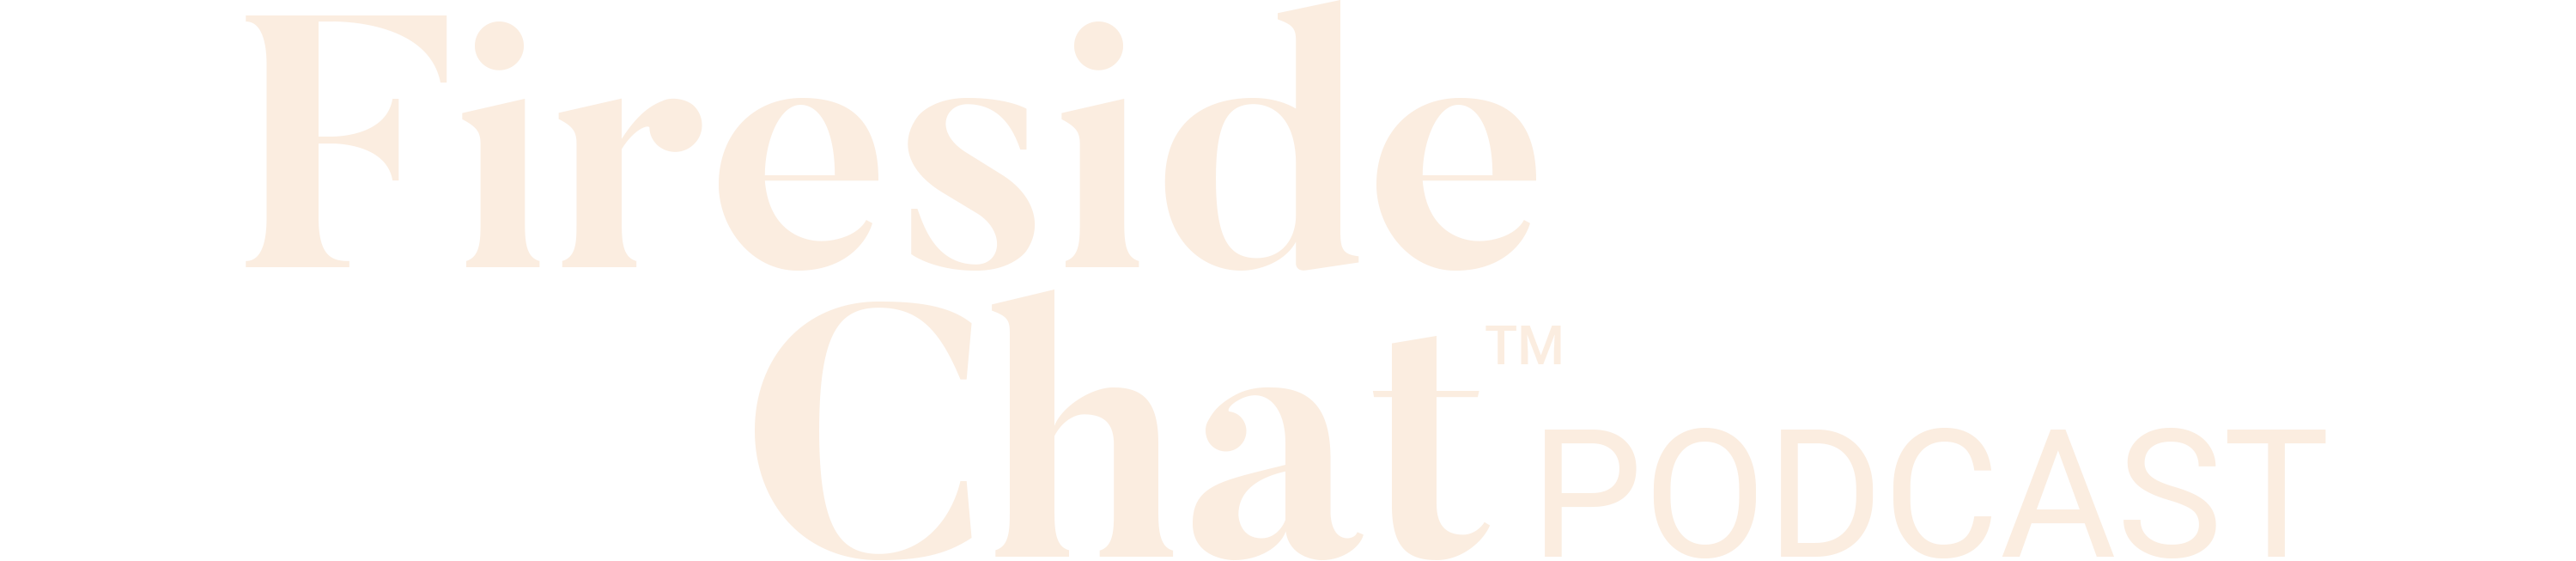 Fireside Chat Podcast by Urban Bonfire